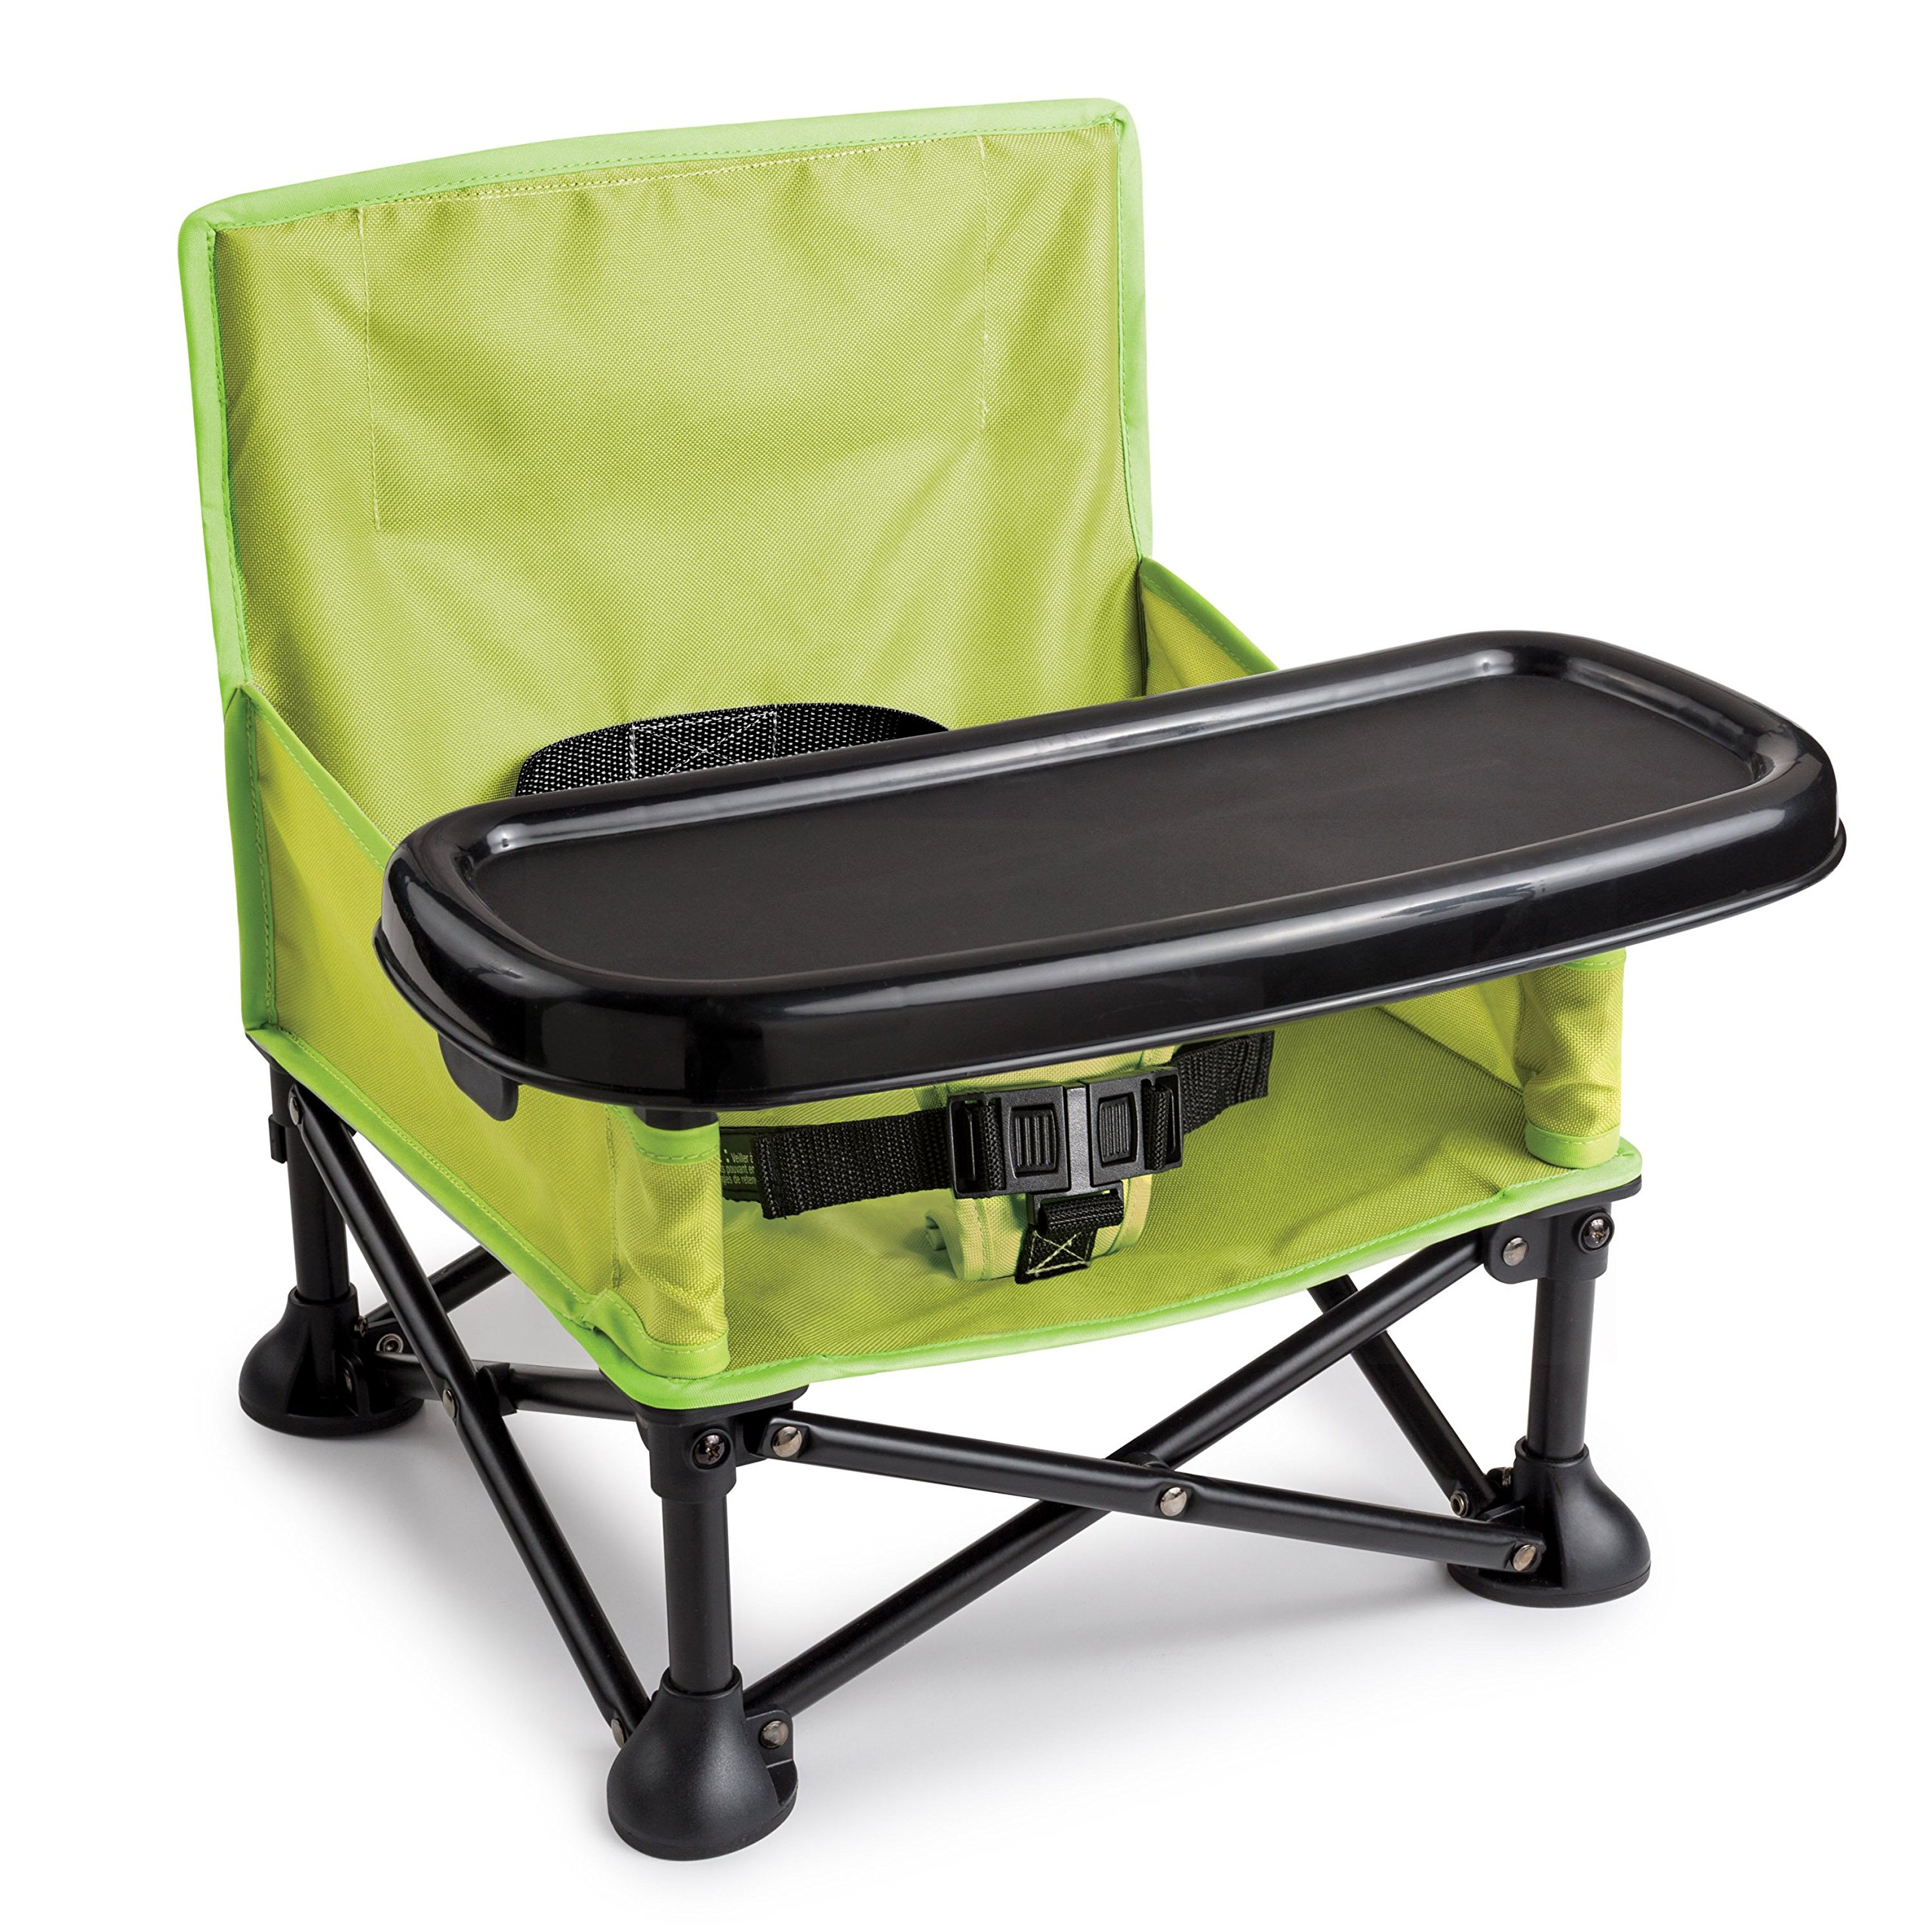 Folding Camping High Chair New Camping Booster Portable Infant Seat Baby Toddler